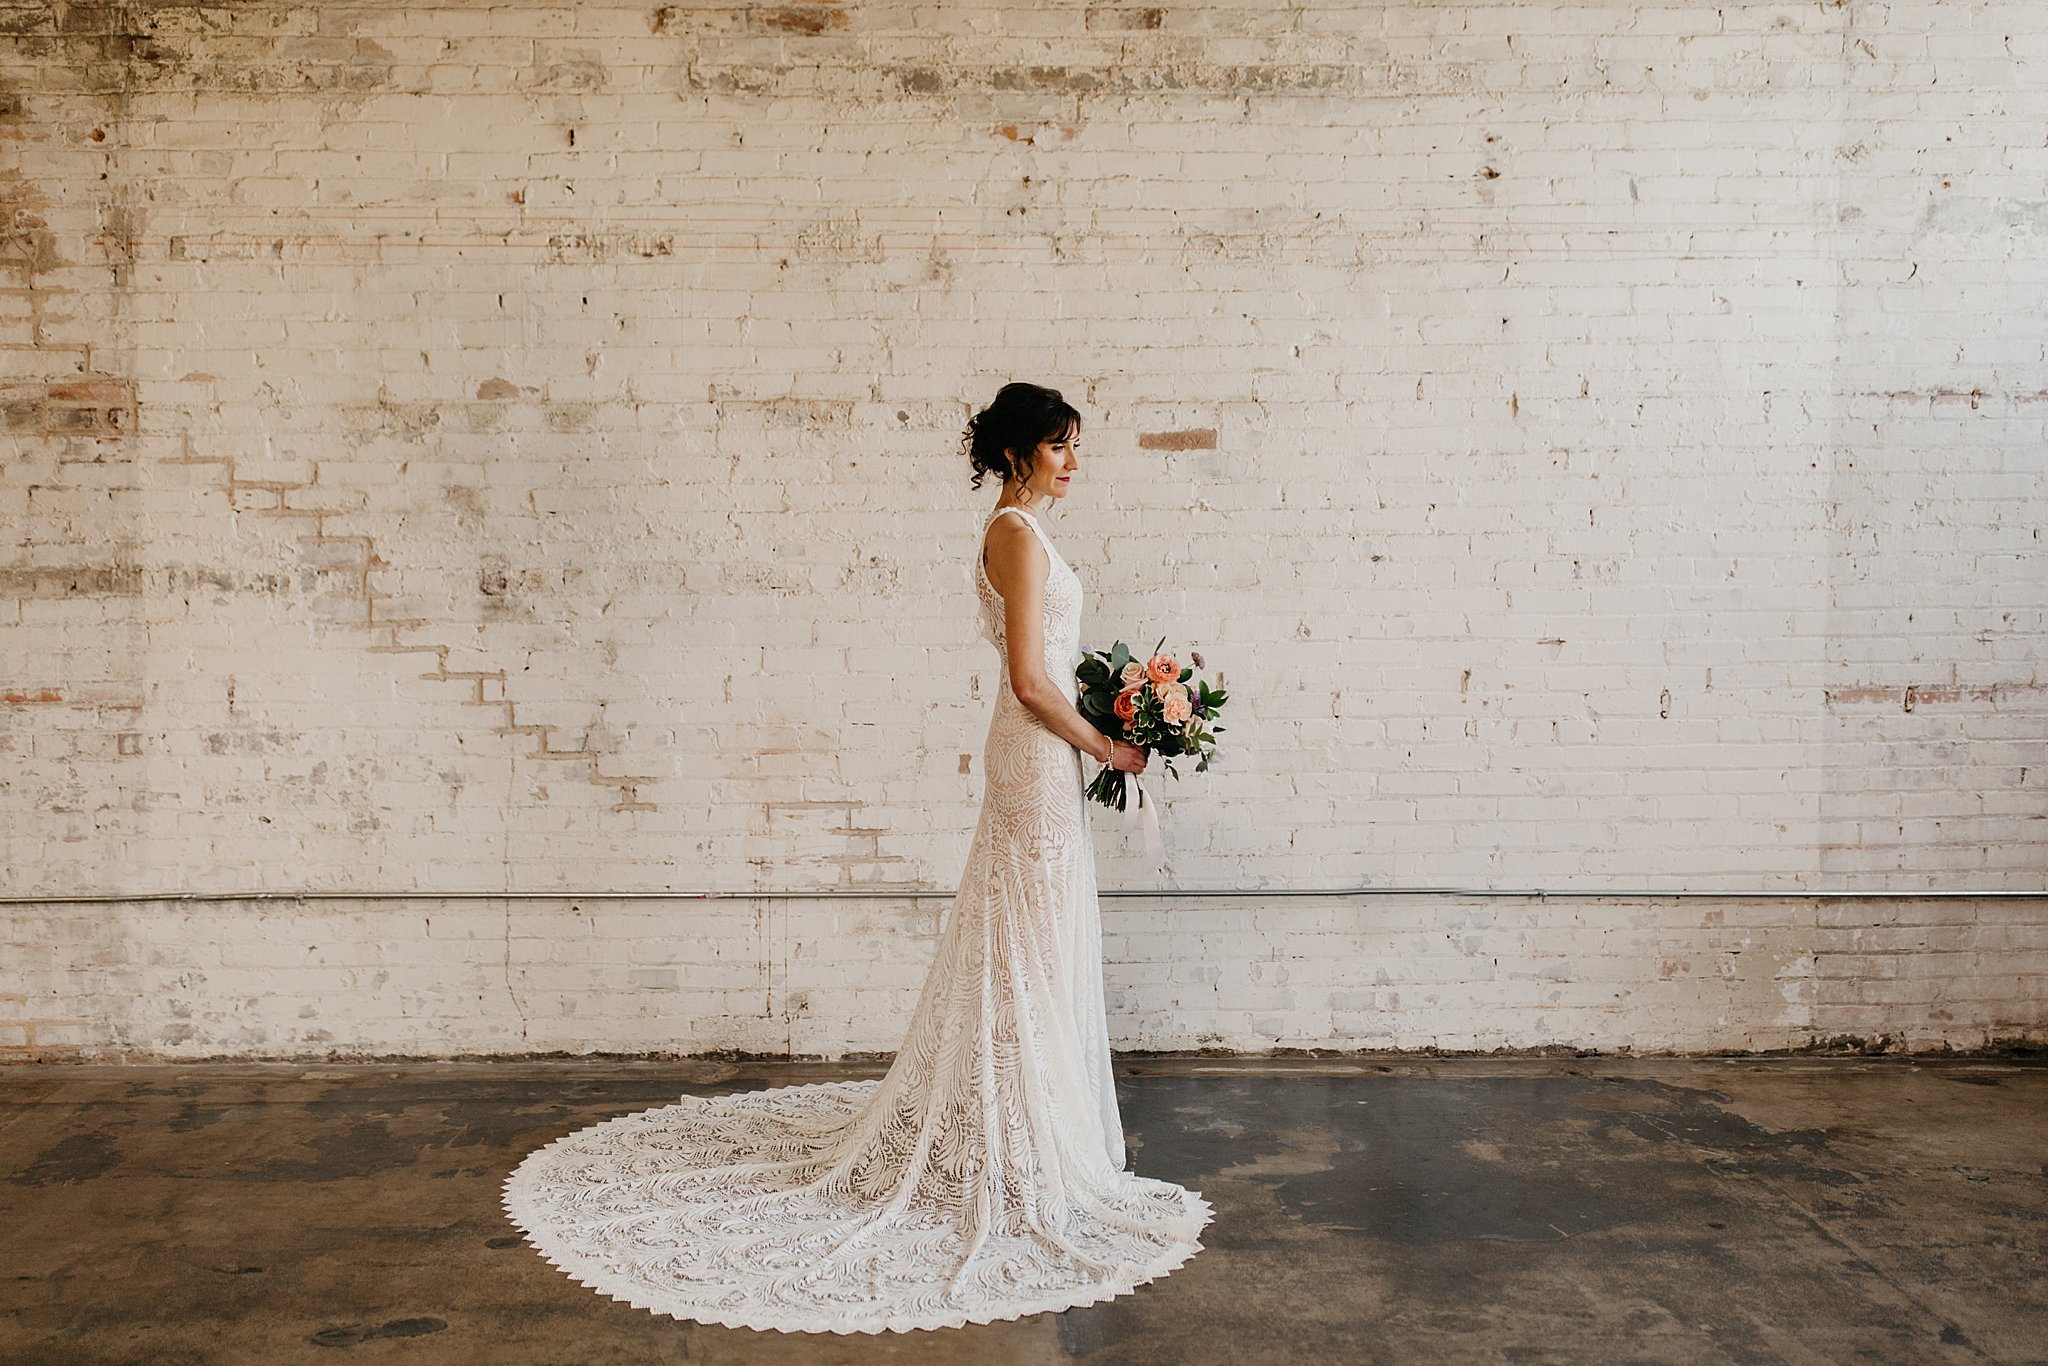 Wilderlove Co_Wedding Photographer_Industrial Wedding_Jewish Wedding_Dallas Texas Wedding_Brake & Clutch Warehouse_North Texas Photographer_0038.jpg